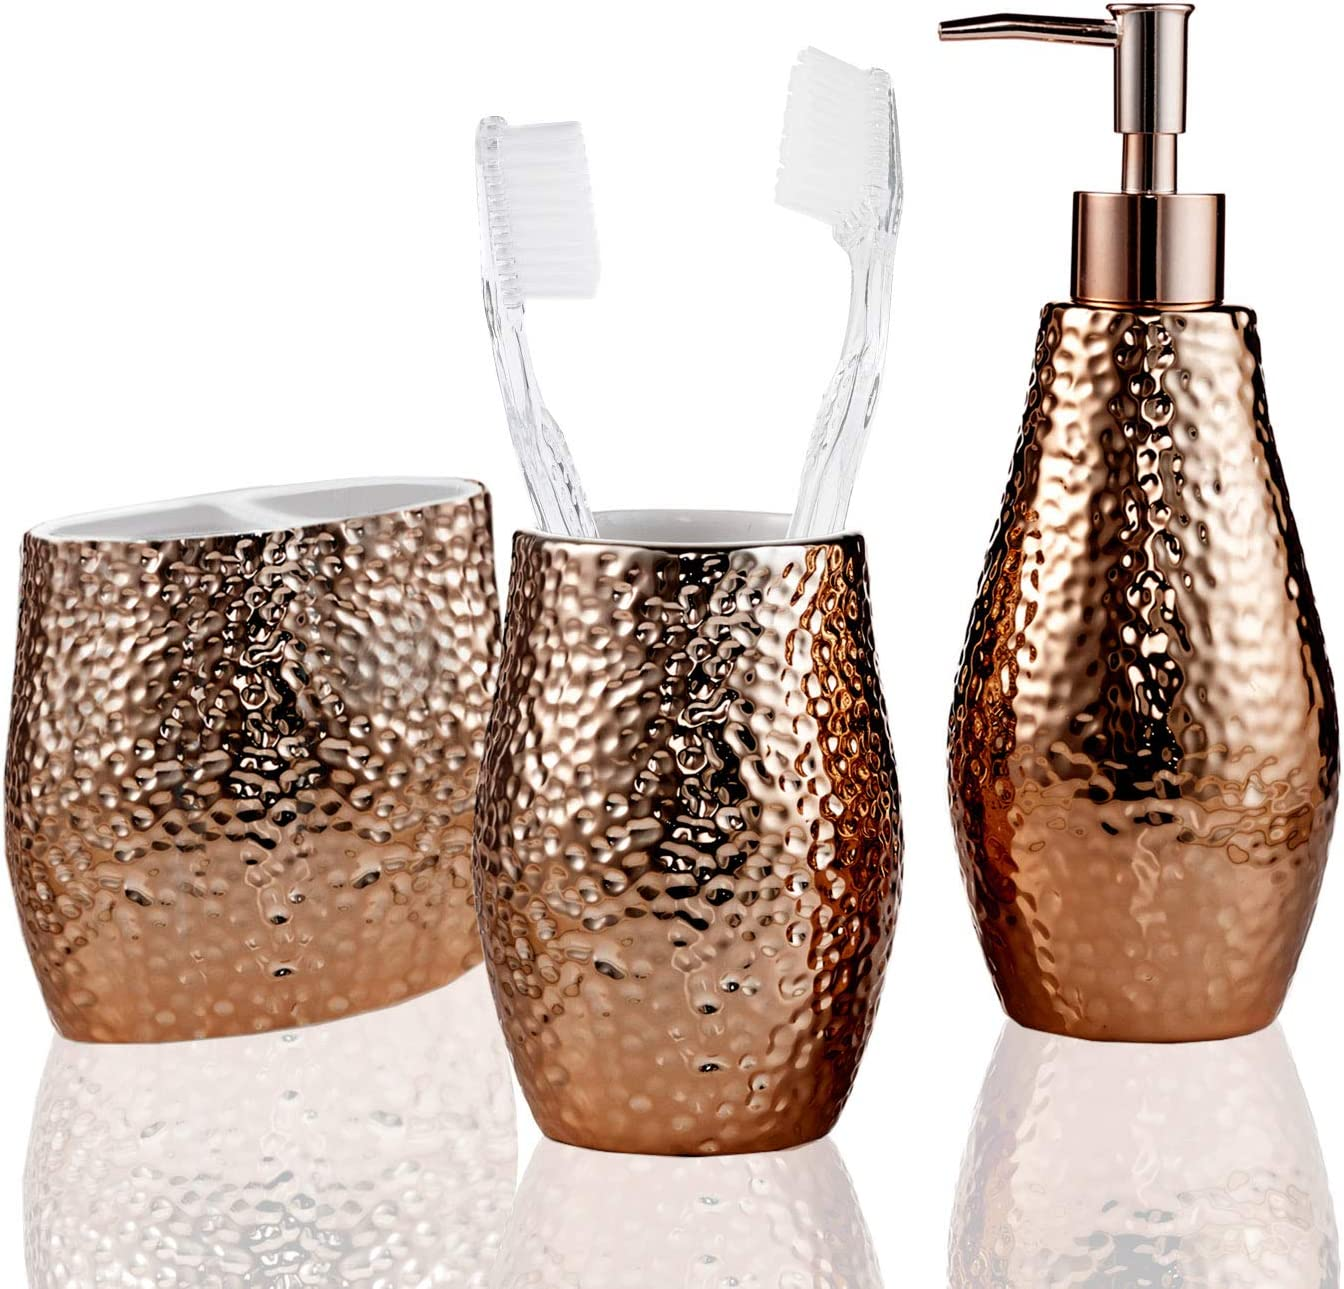 5 pcs New Serene-Life SLBATAC03 Bathroom /& Sink Accessory Set